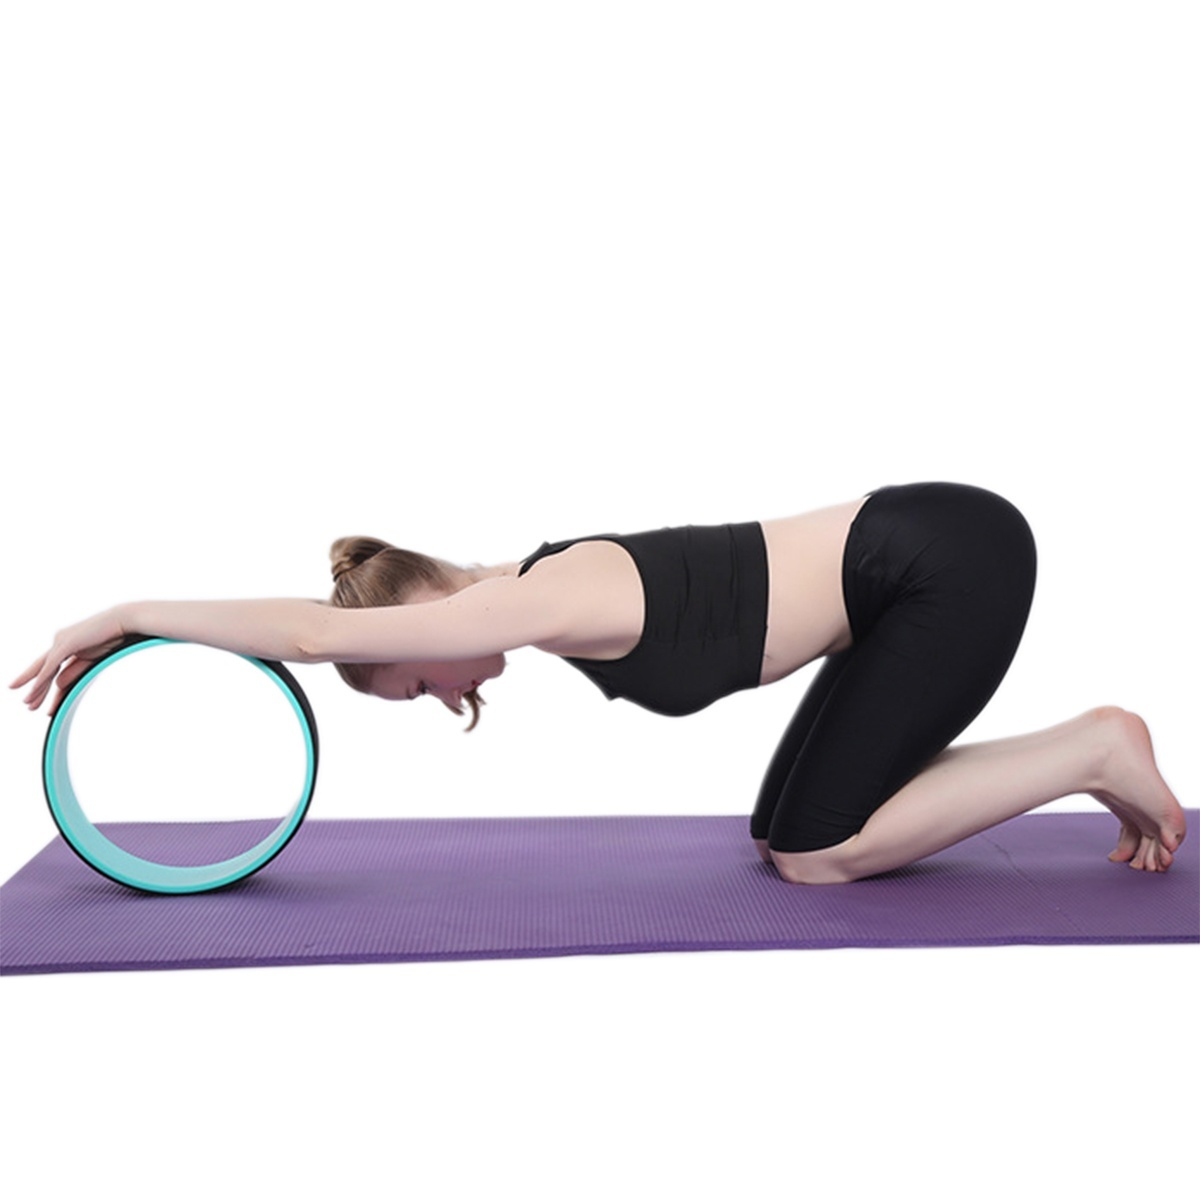 Perfect for Dharma Pose Spine Back Bends /& Stretching Thick Cushion Comfy Degree Airchy Yoga Wheel for Back Pain Durable Back Roller Prop Wheel